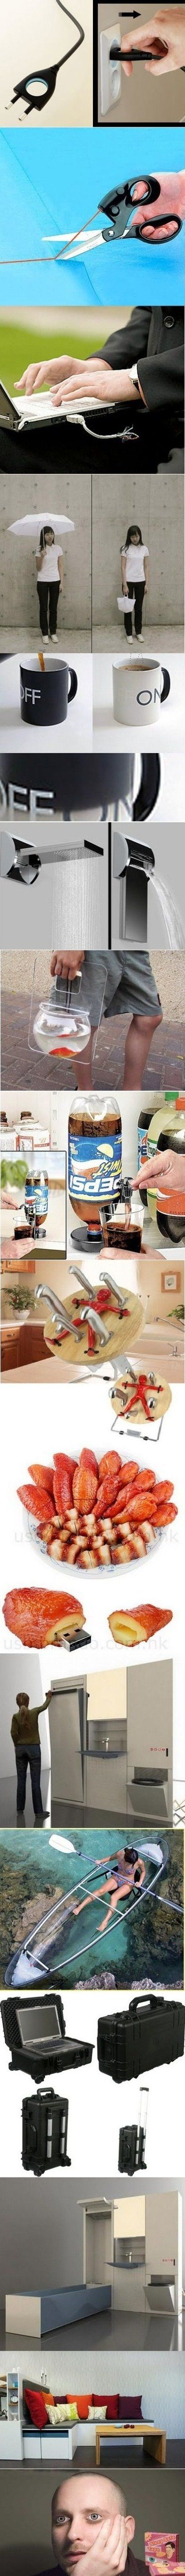 Crazy Inventions | Funny crazy inventions.. | Funpings